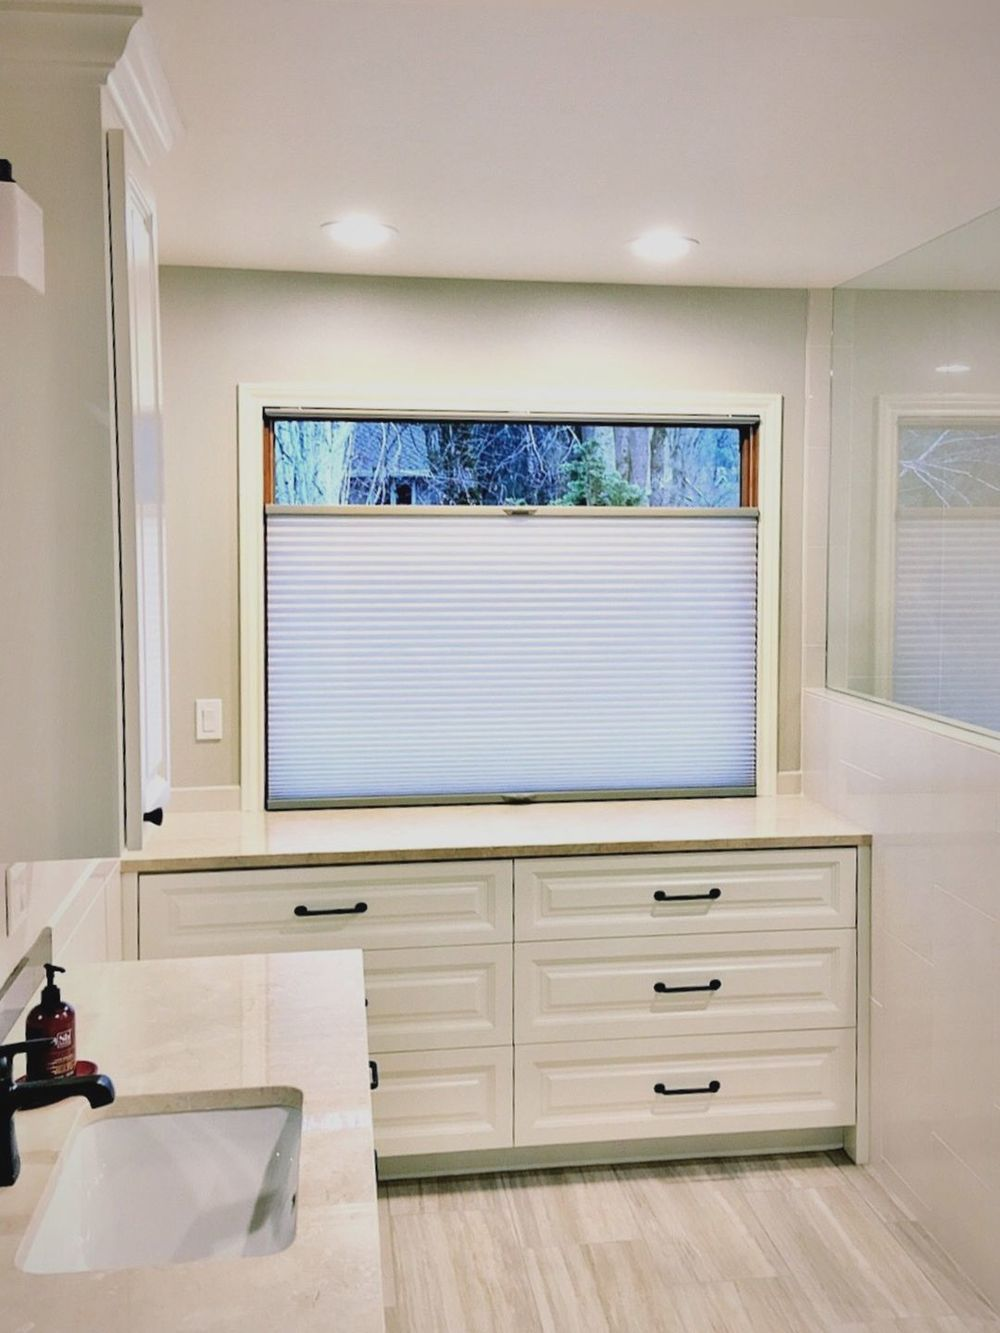 Master bathroom featuring a single sink counter and cabinetry with a counter, along with a glass window featuring a window shade.